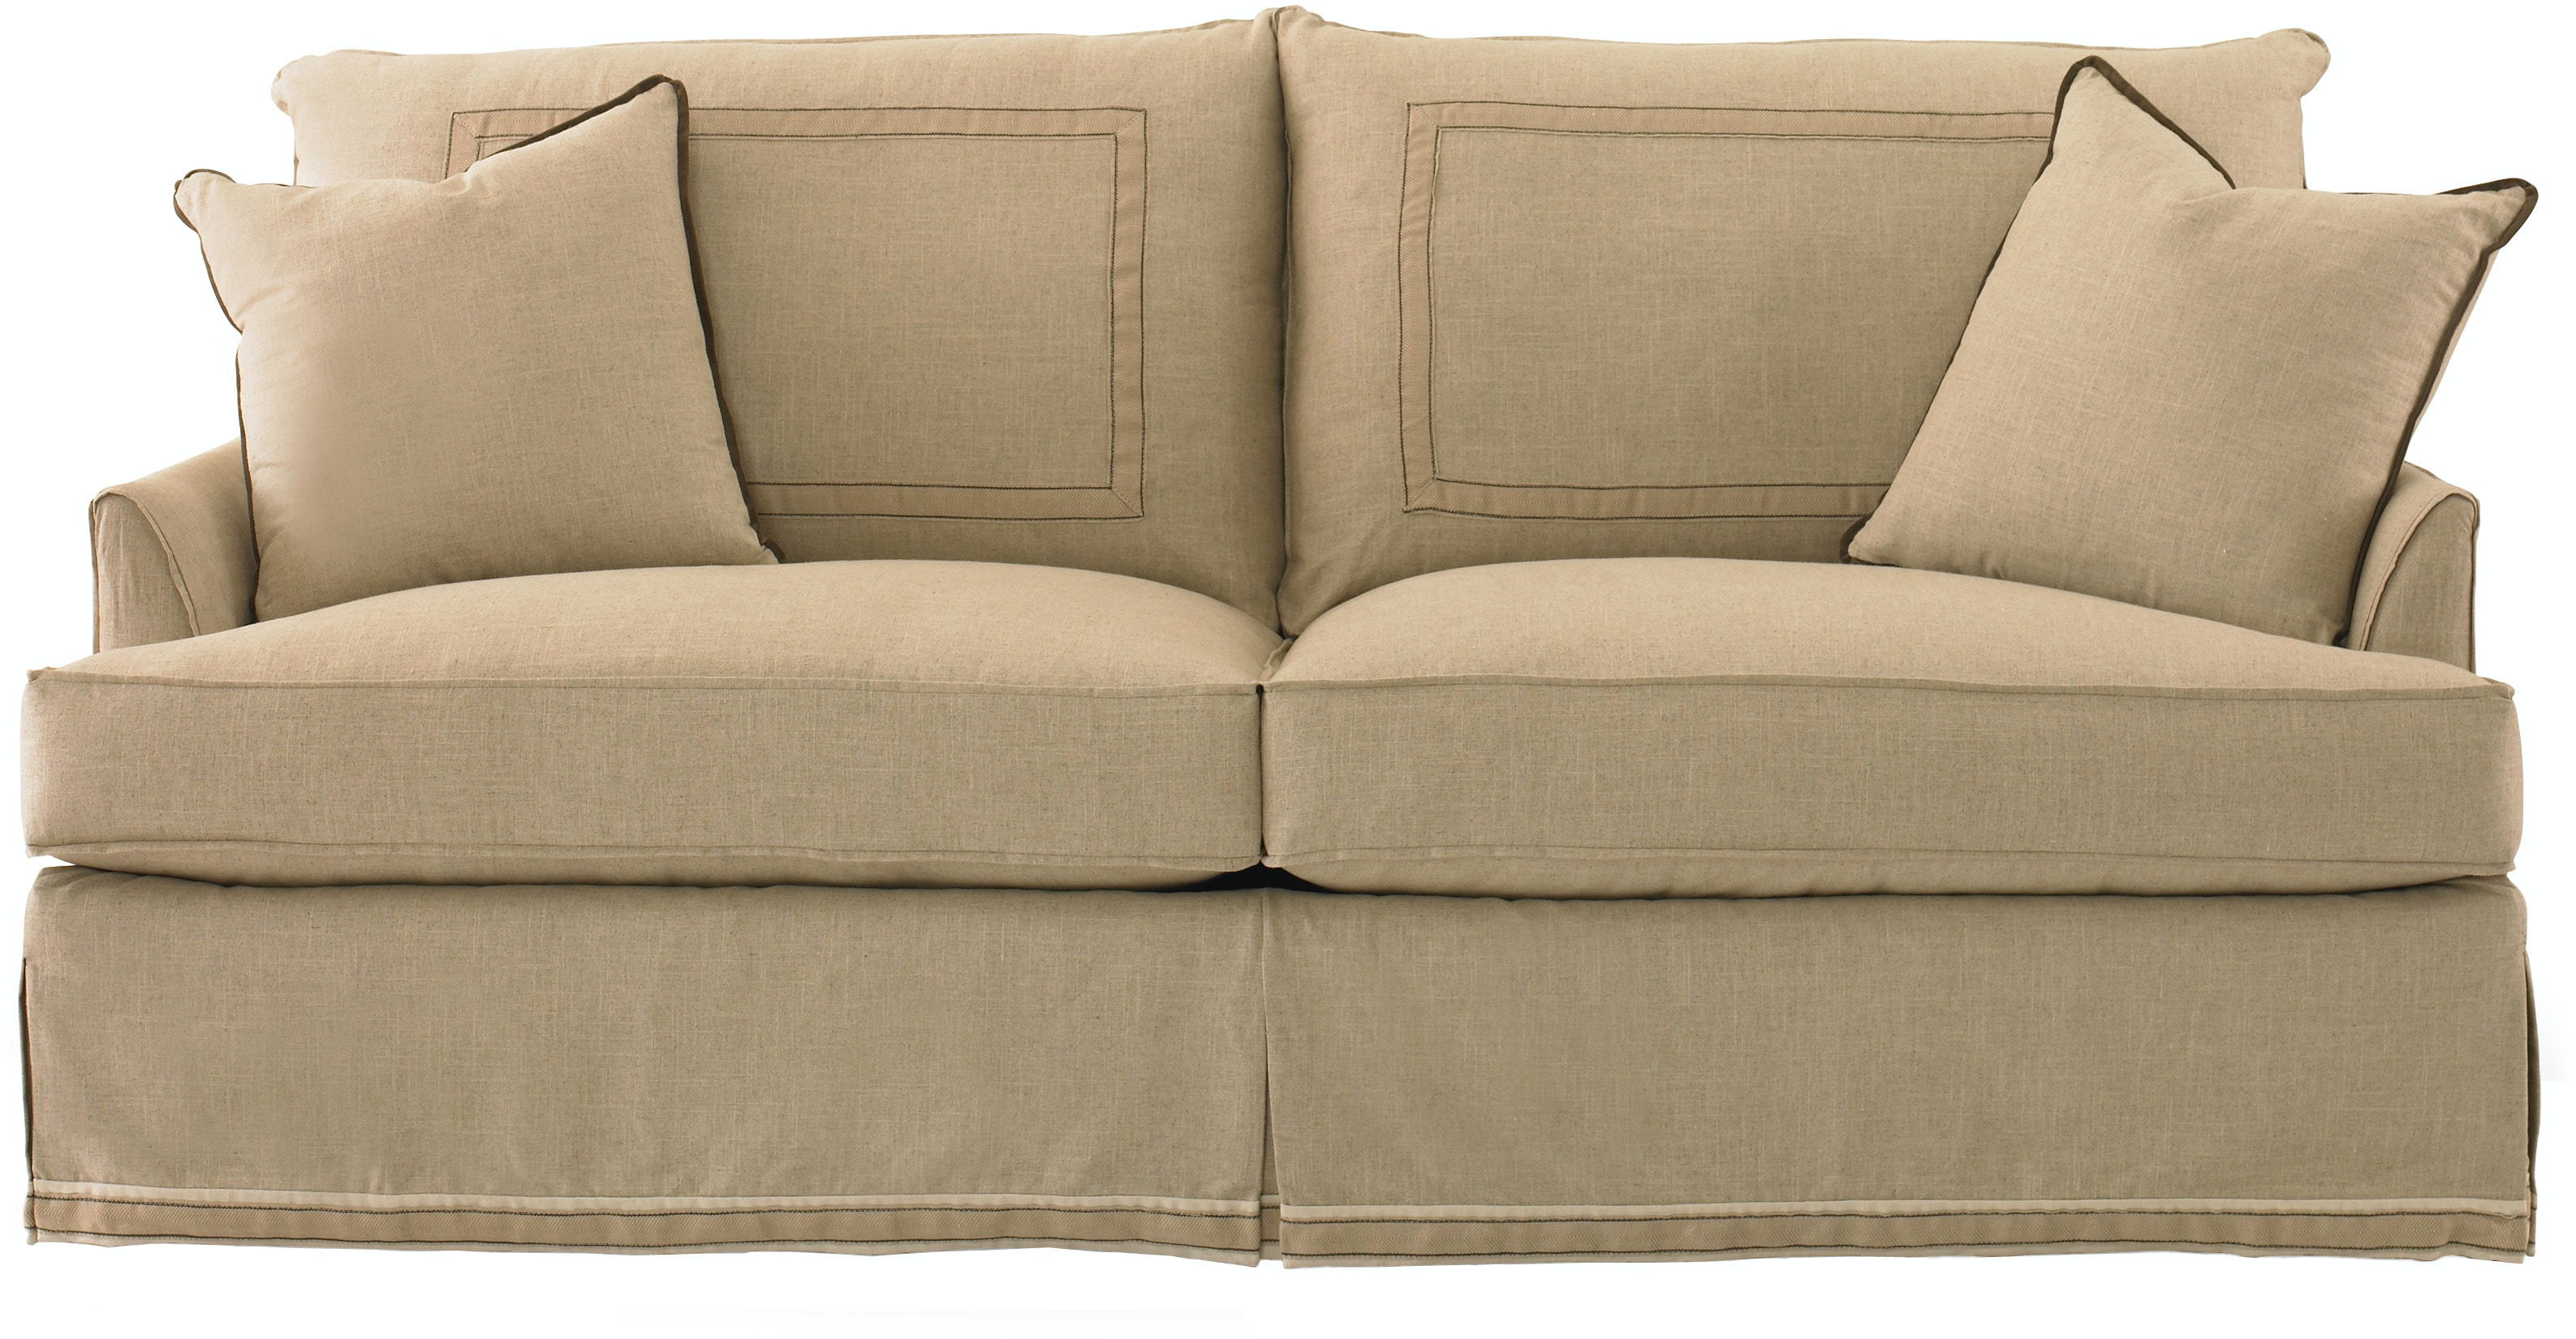 baker furniture sofa baker living room back sofa 830 76 studio 882 1450